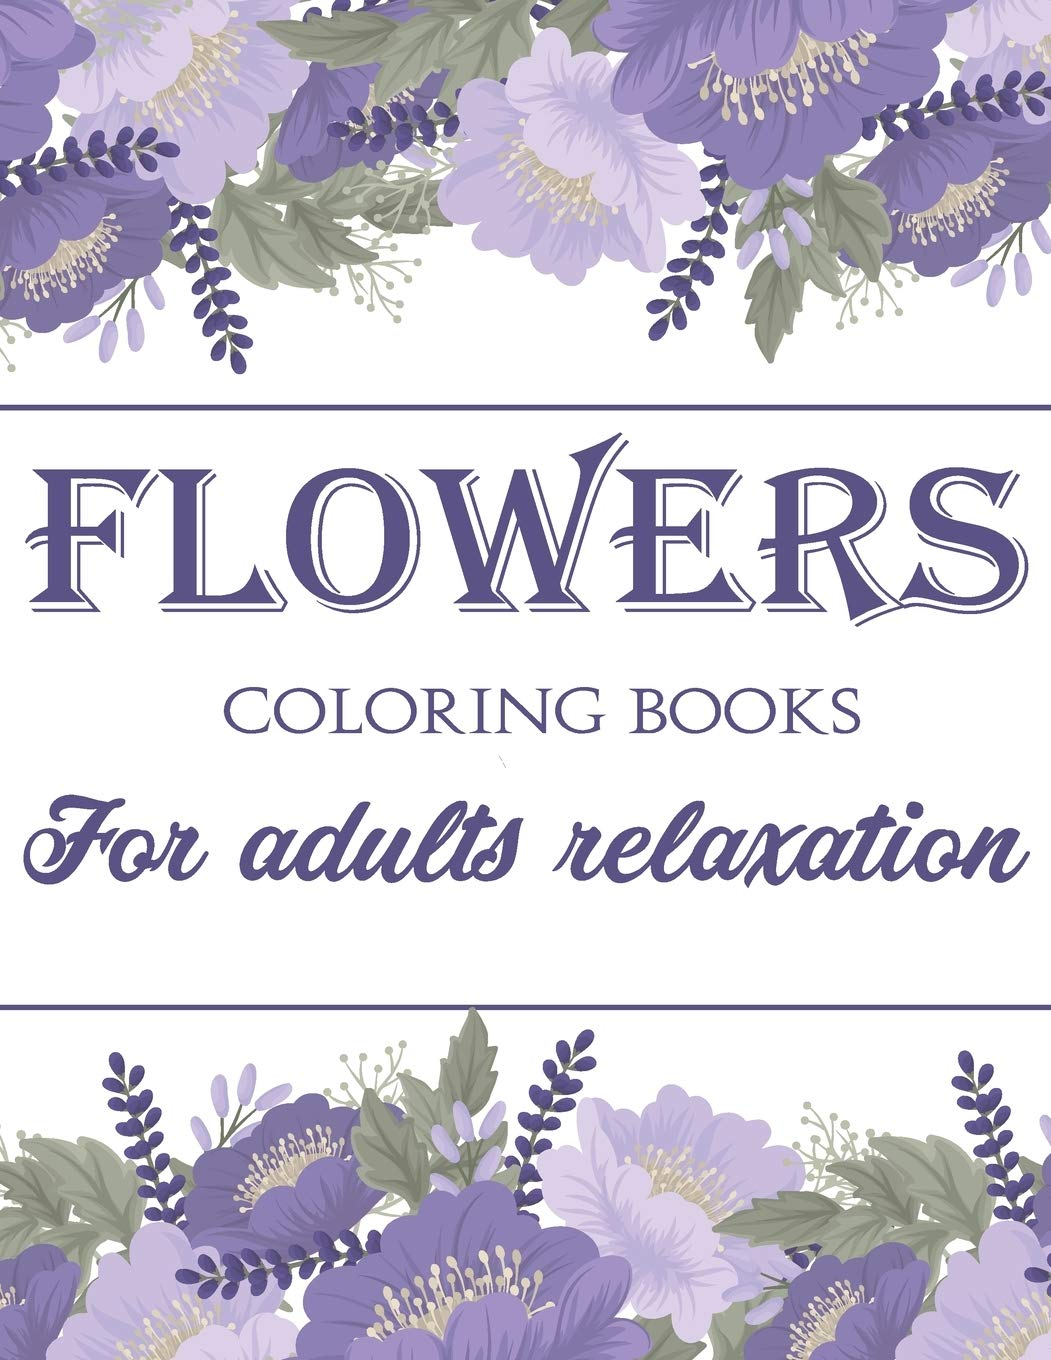 Flowers Coloring Book For Adults Relaxation 40 Flowers Coloring Pages With Fun Easy And Stress Relieving Flower Designs Amazon Co Uk Print House Roseleaf 9798644589135 Books